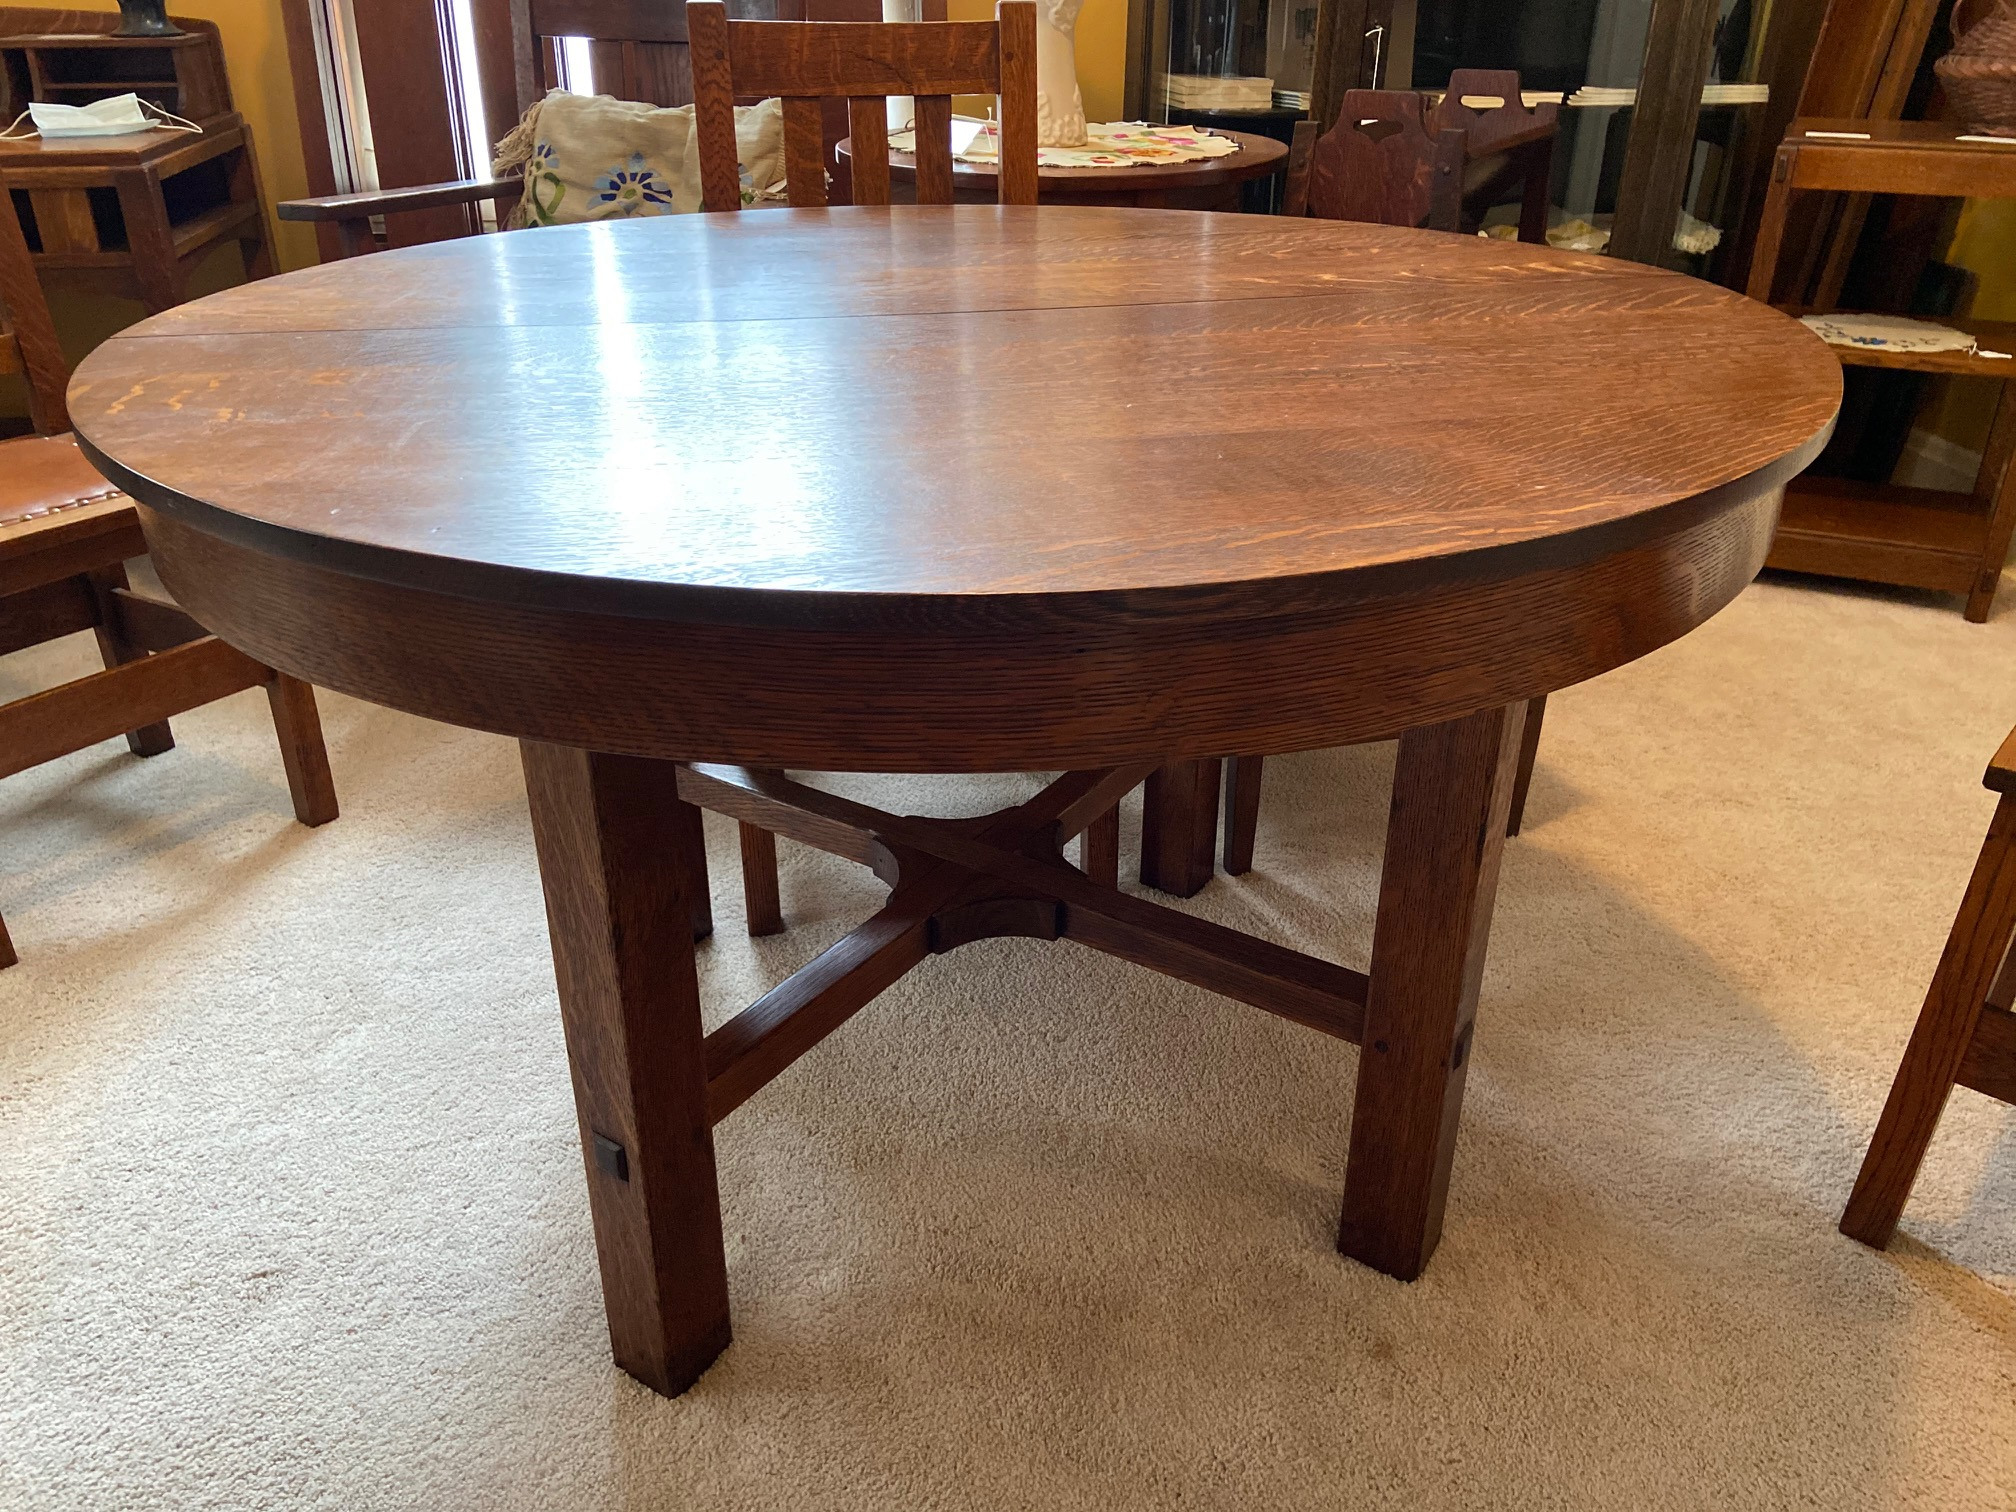 L & JG Stickley Dining Room Table